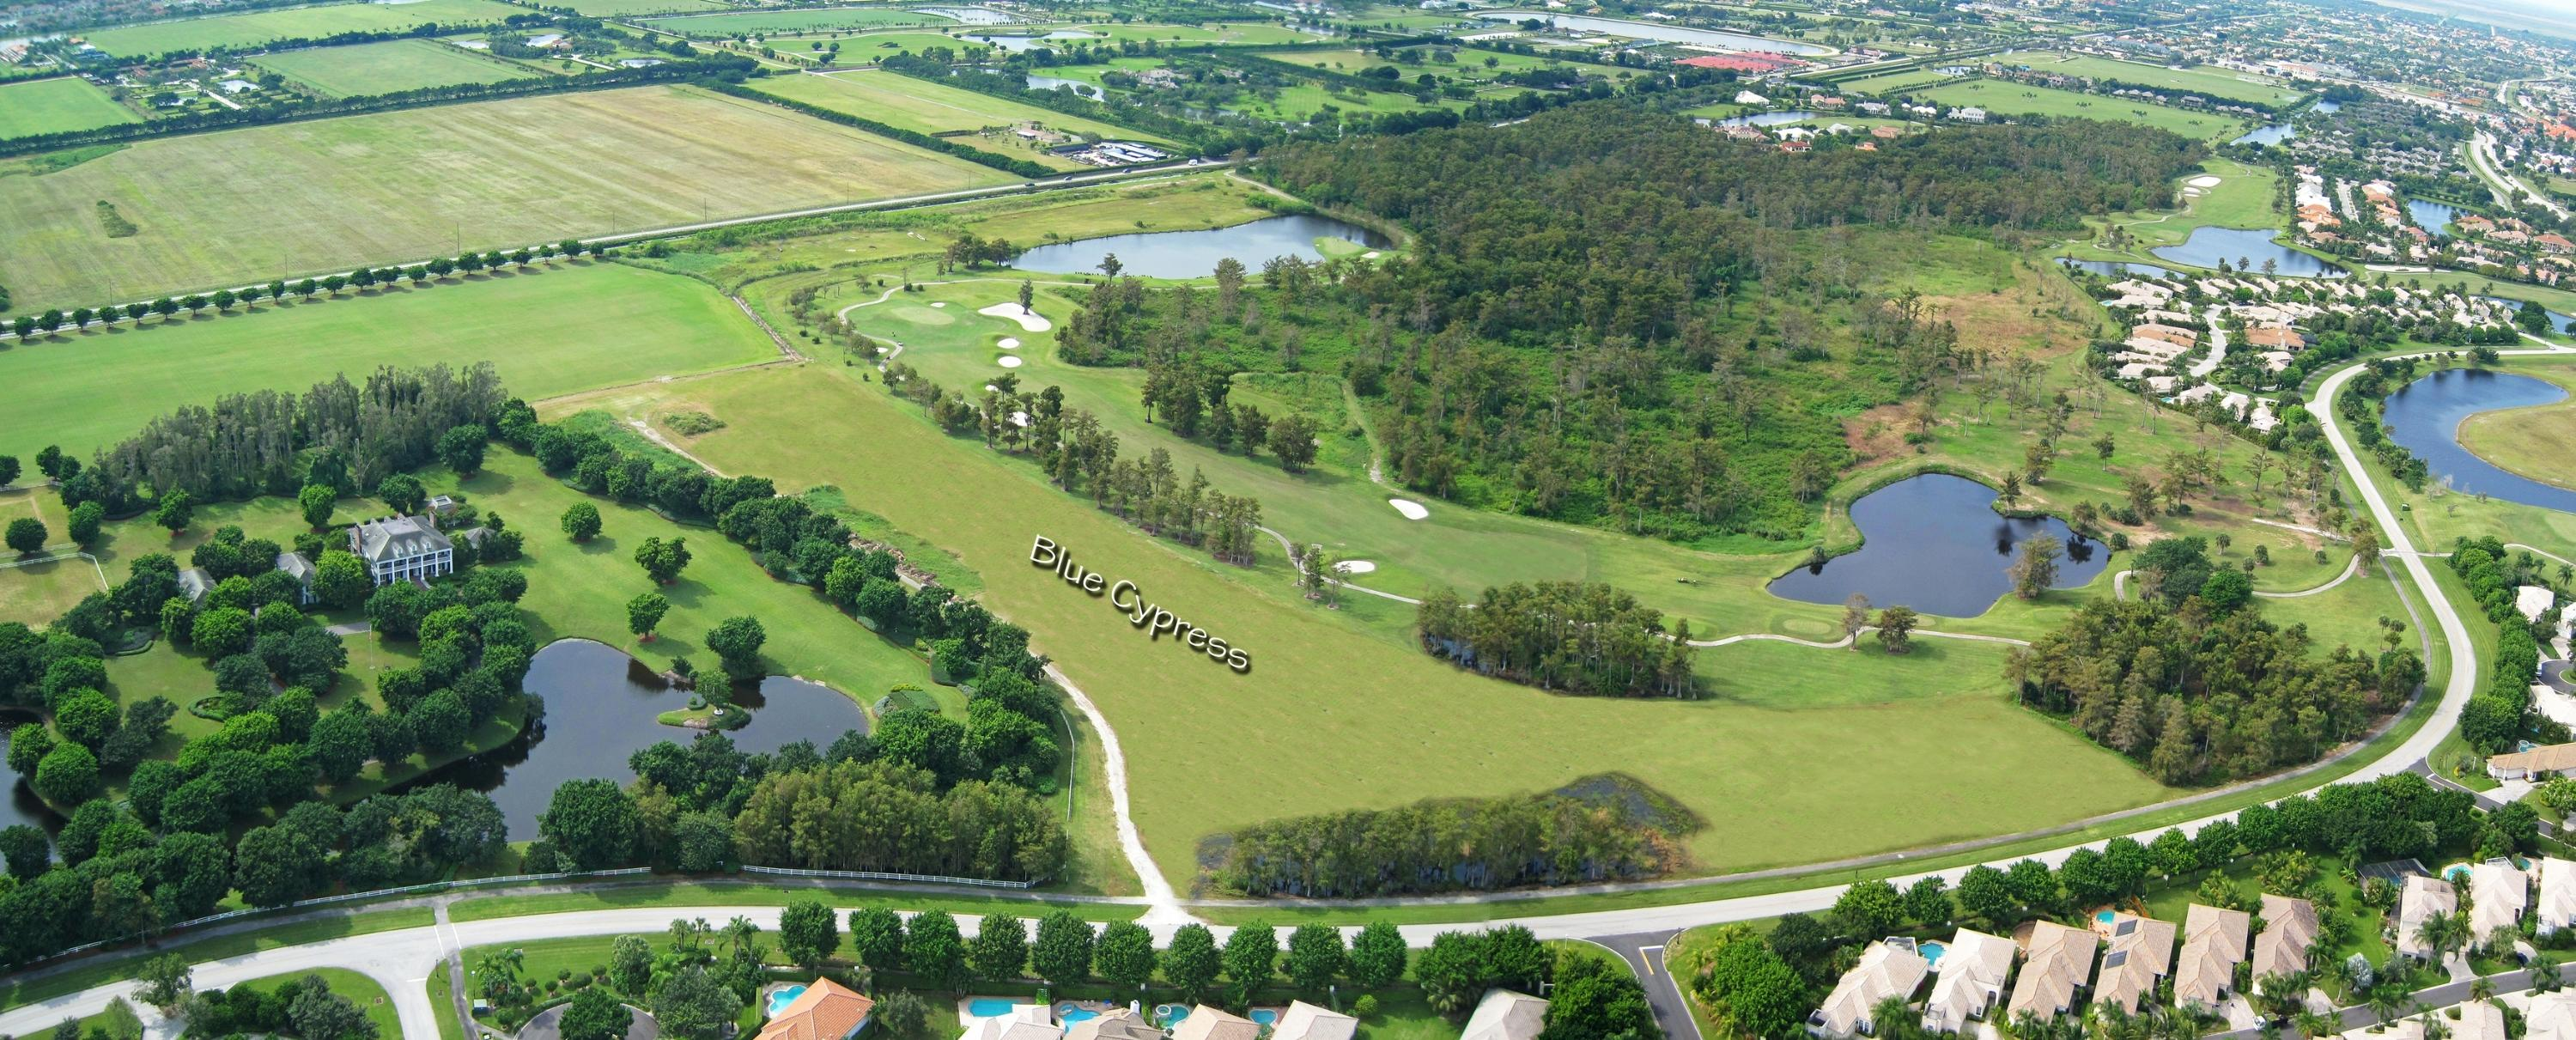 3189 Blue Cypress Lane, Wellington, Florida 33414, ,Land,For Sale,Palm Beach Polo,Blue Cypress,RX-10044534